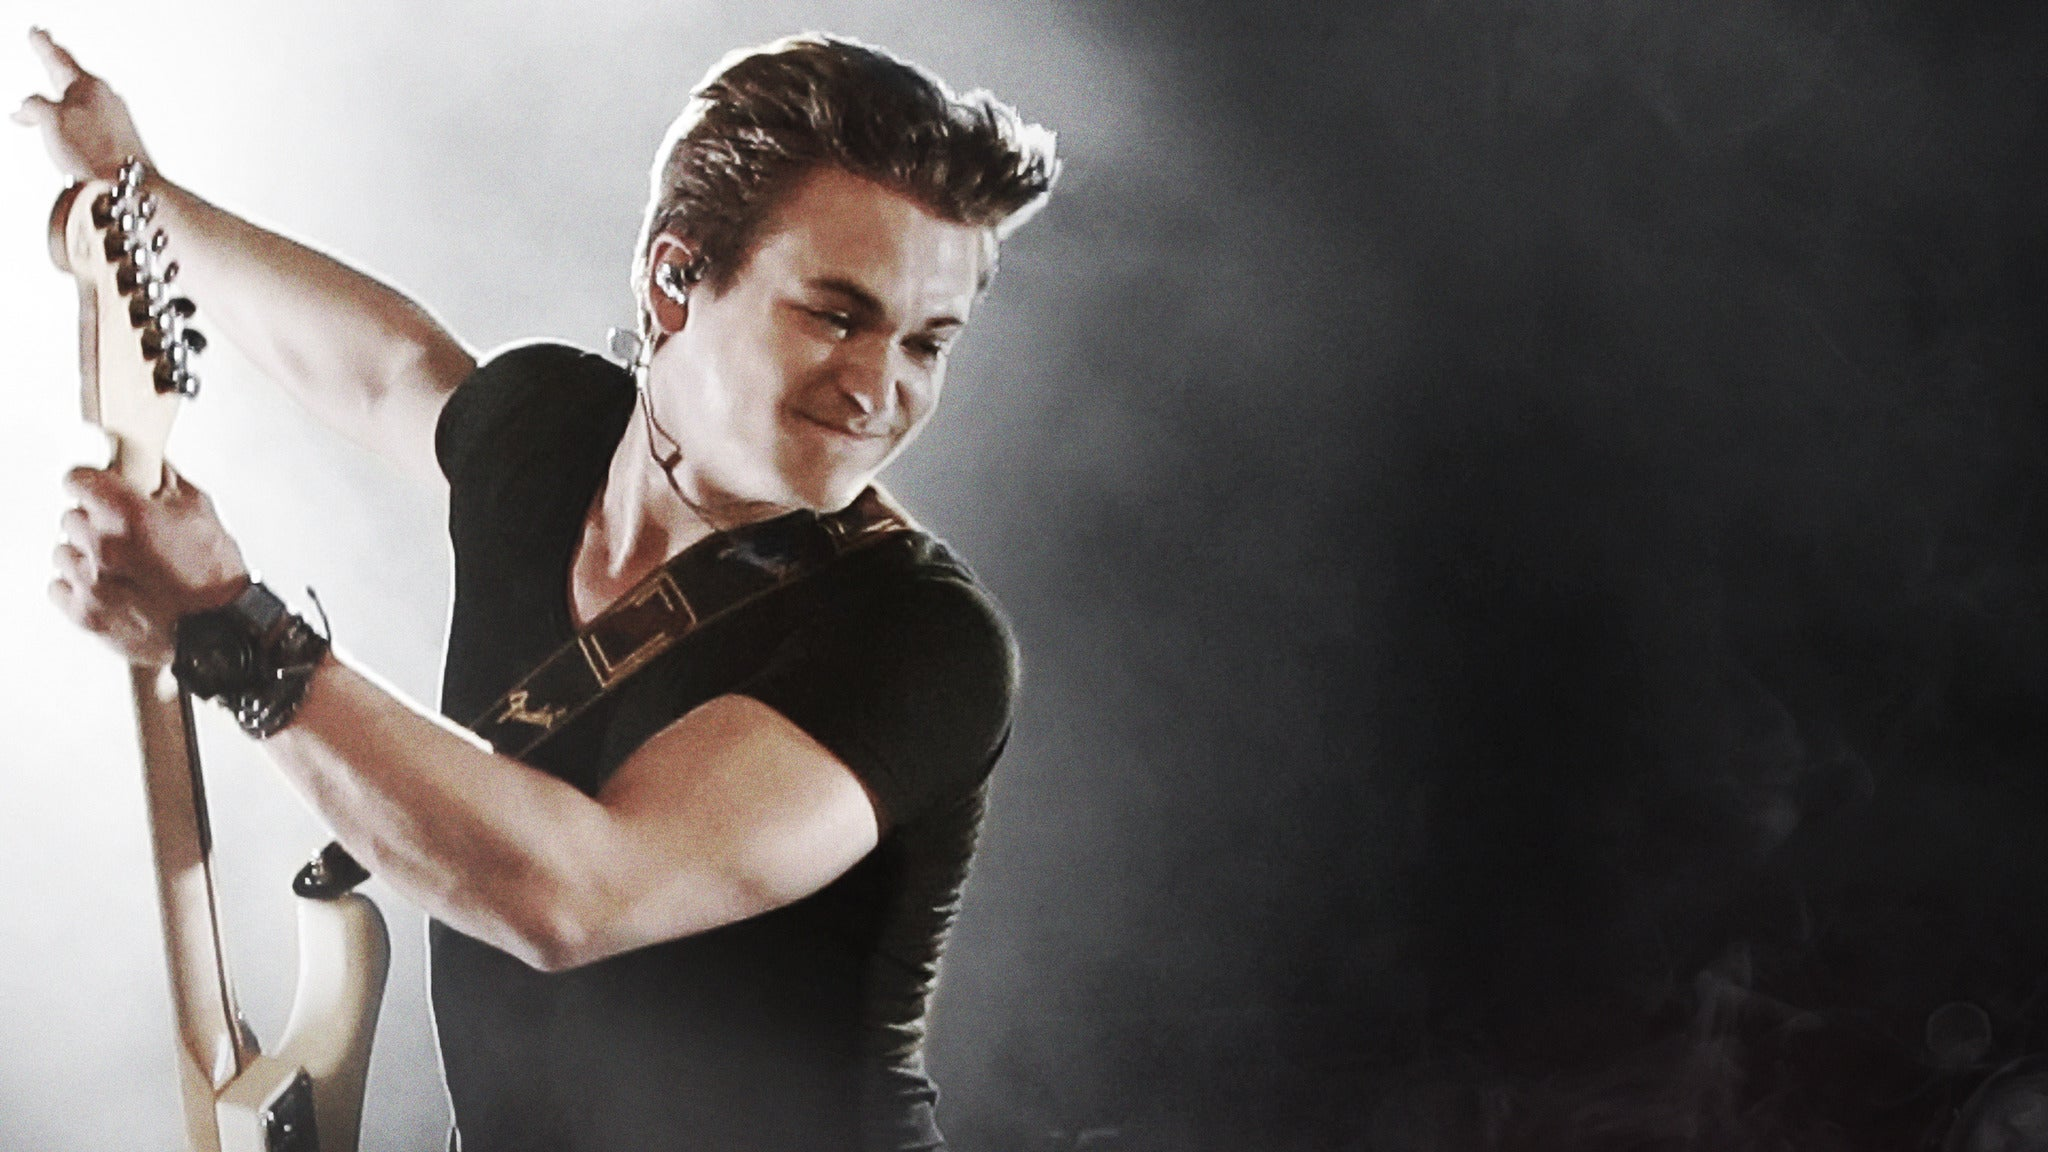 Hunter Hayes at Los Angeles County Fair - Pomona, CA 91768